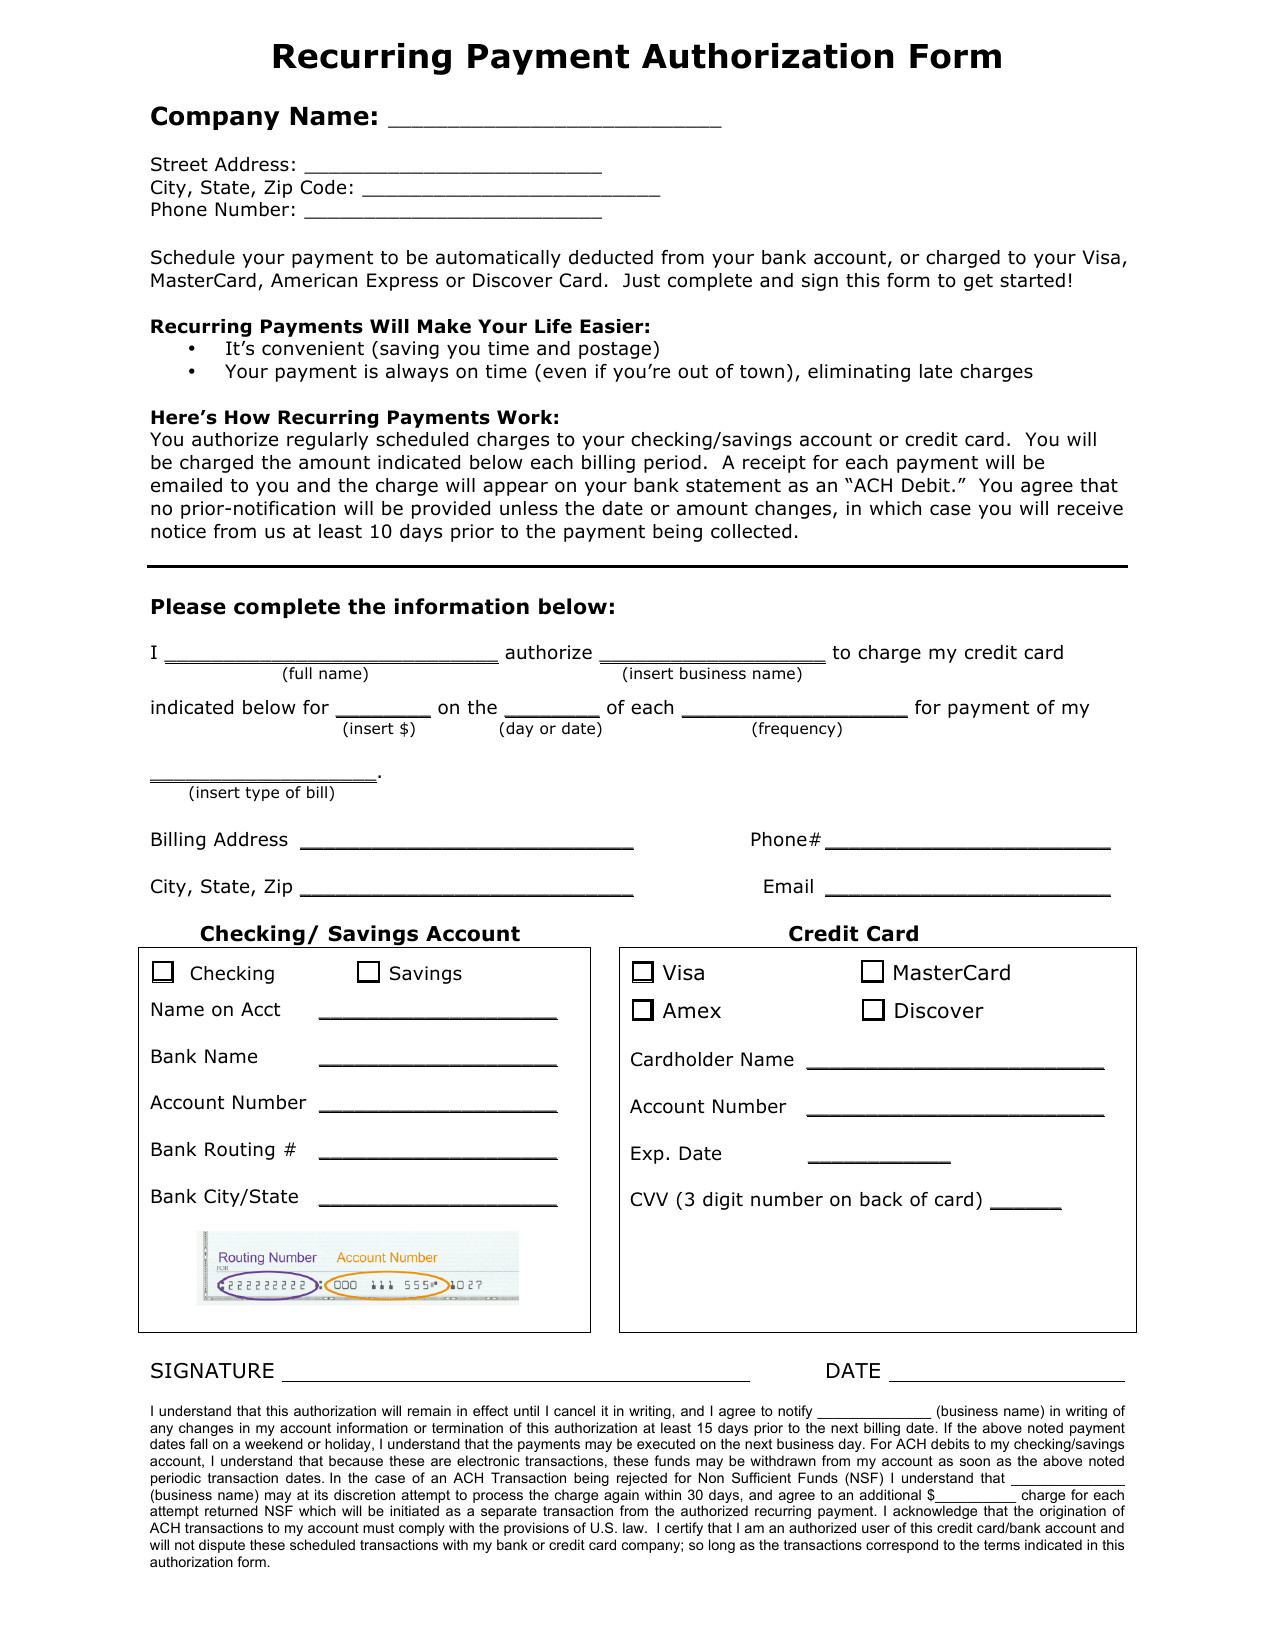 Payment Authorization form Template Download Recurring Payment Authorization form Template